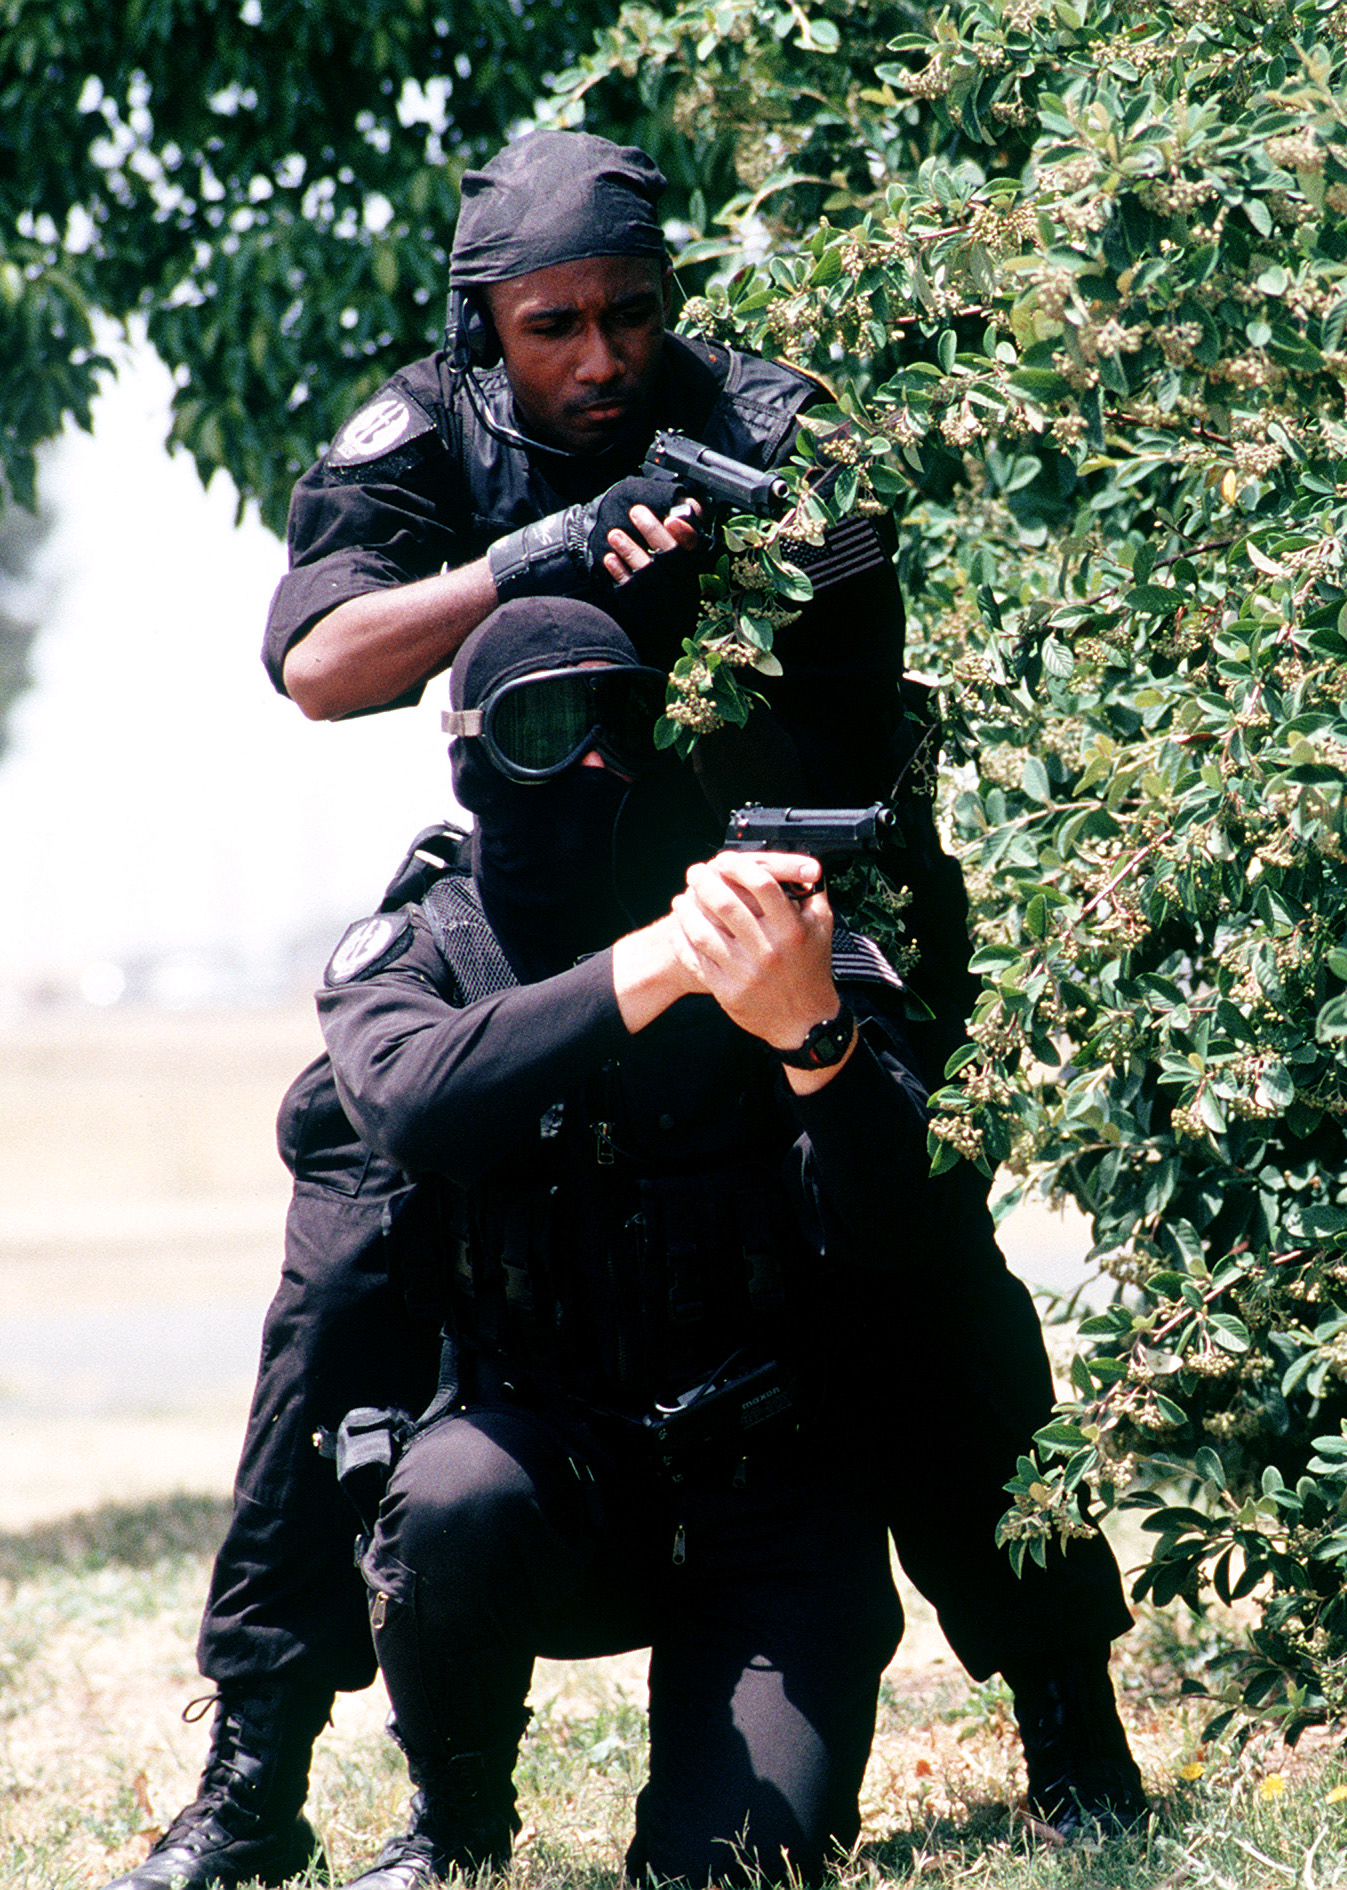 Members_of_the_60th_Security_Police_Squadron's_Base_Swat_Team